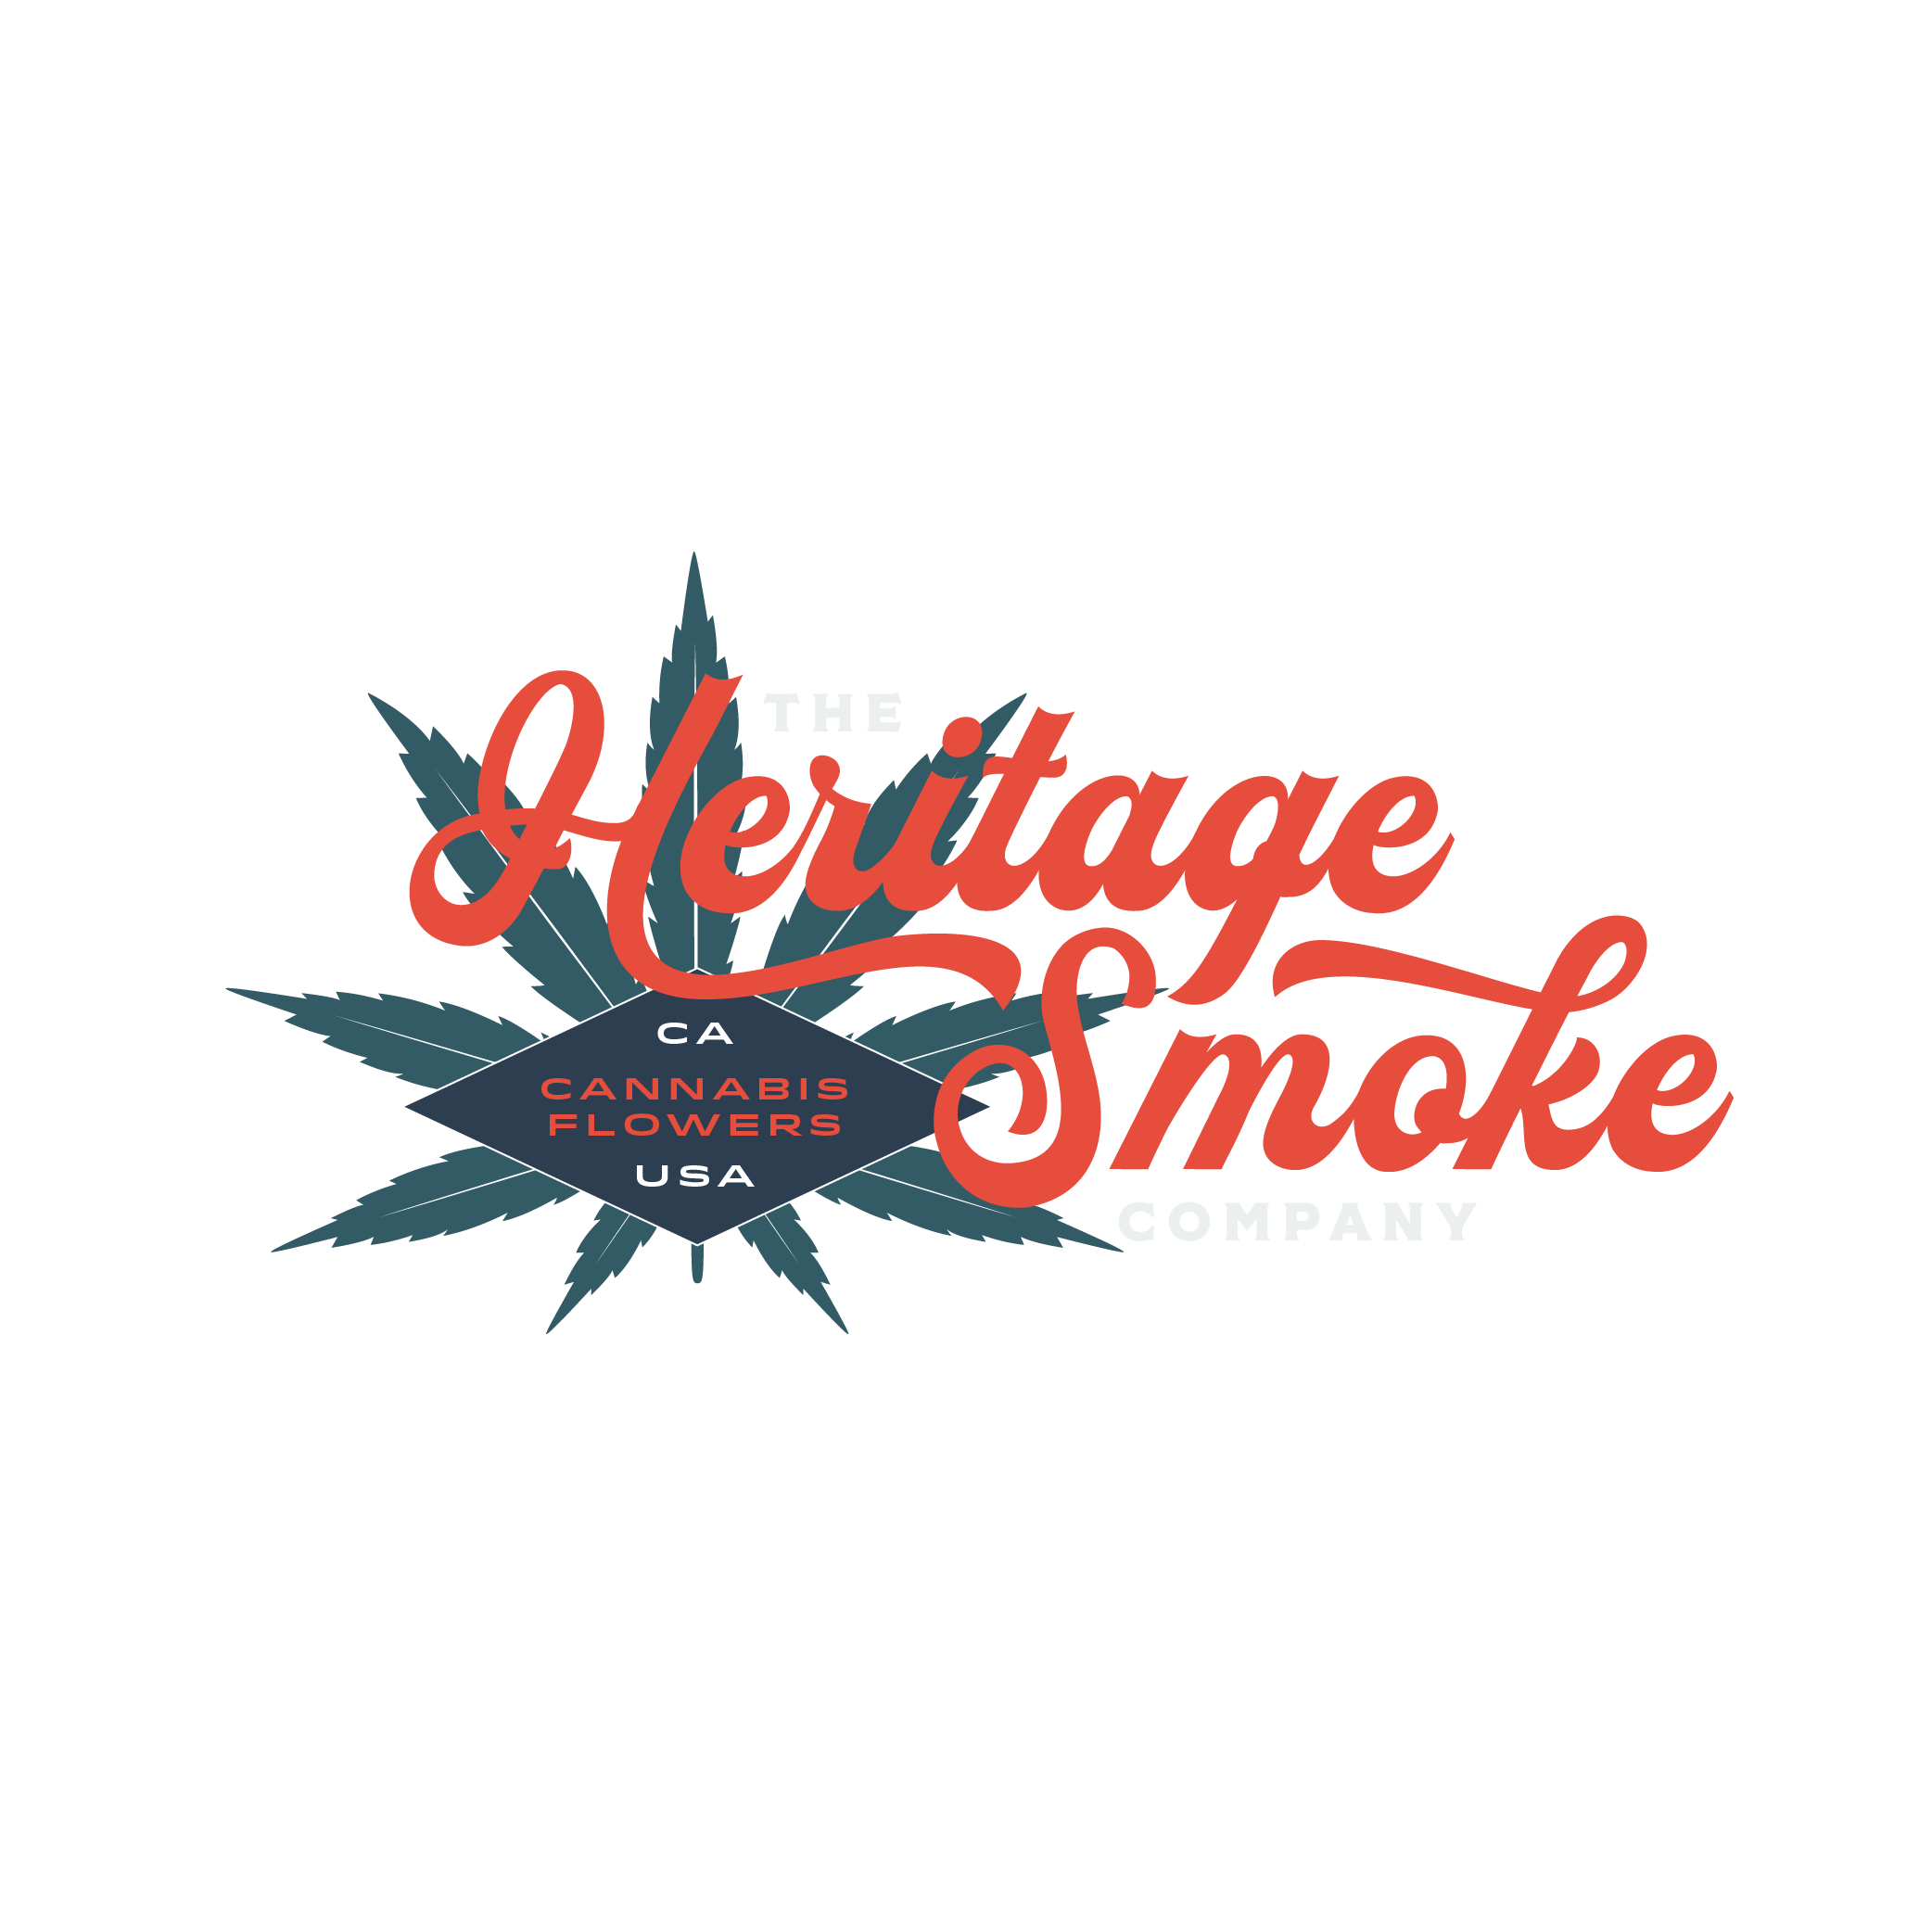 CALIFORNIA LOVE - The folks from The Heritage Smoke Company reached out to us with a problem: